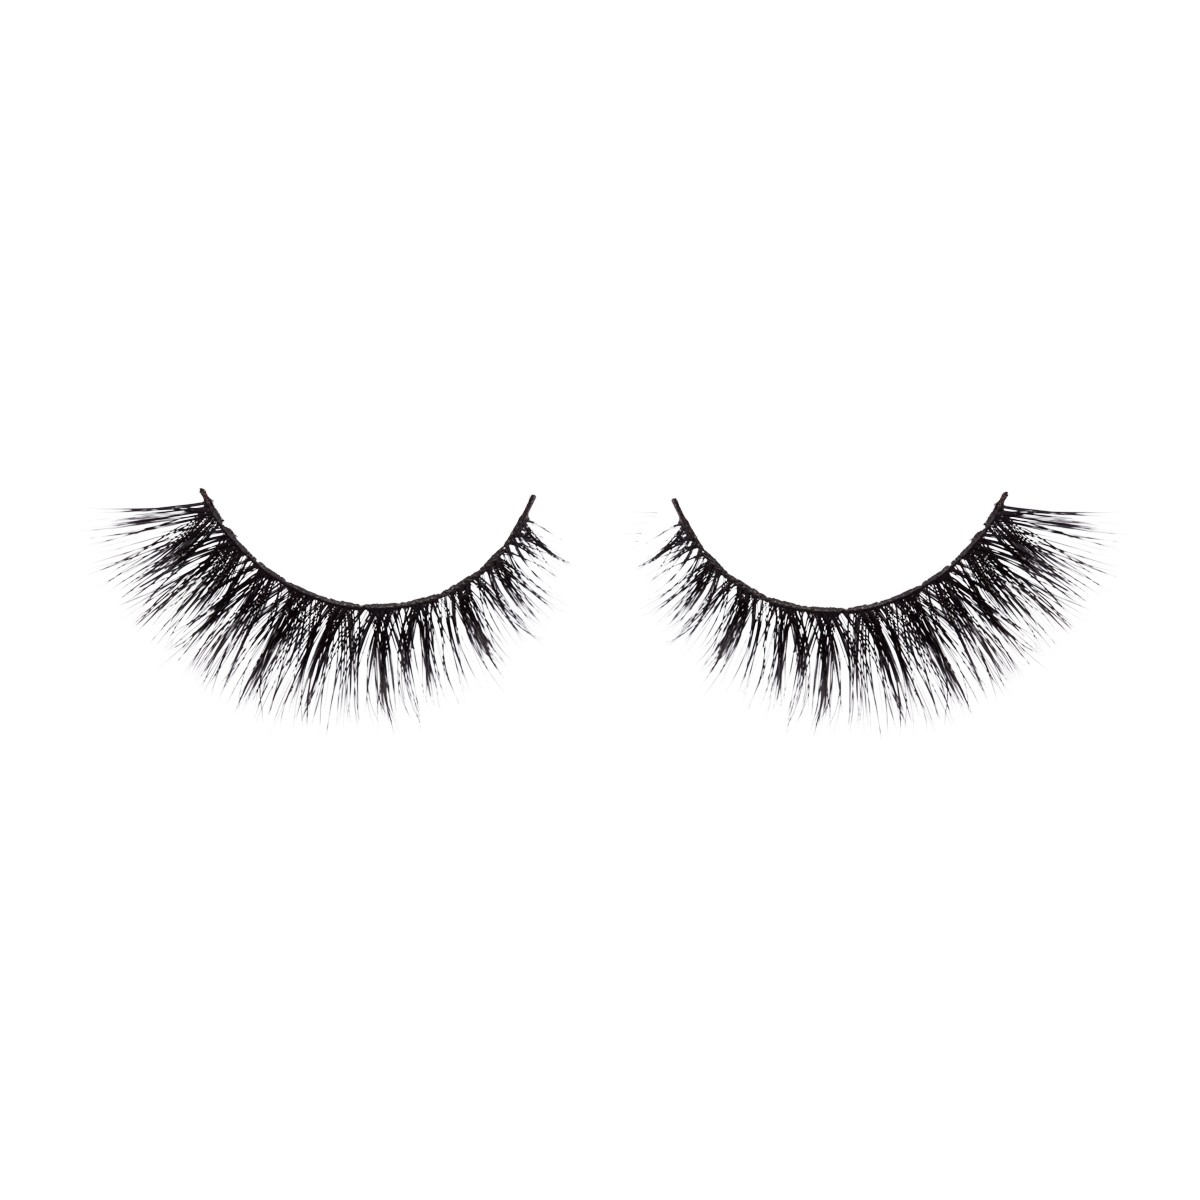 b160b823e93 Here are photos of all six lash styles. They are all equally different in  how beautiful they are on.